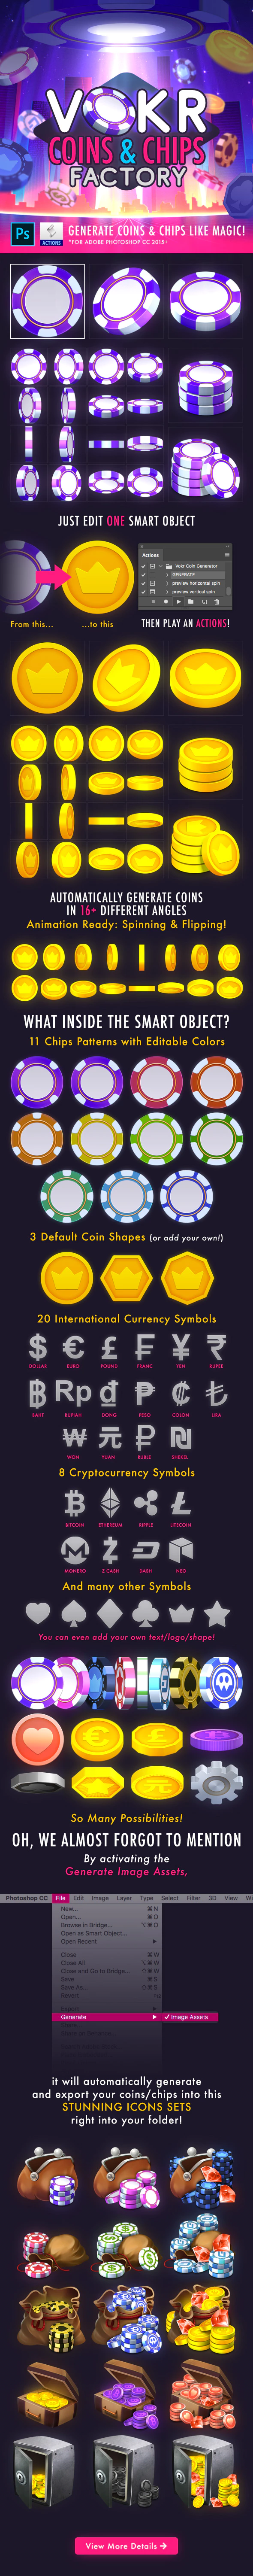 Vokr Coins Chips Factory By Weirdeetz Graphicriver Photoshop Actions Amazing Photoshop Currency Symbol